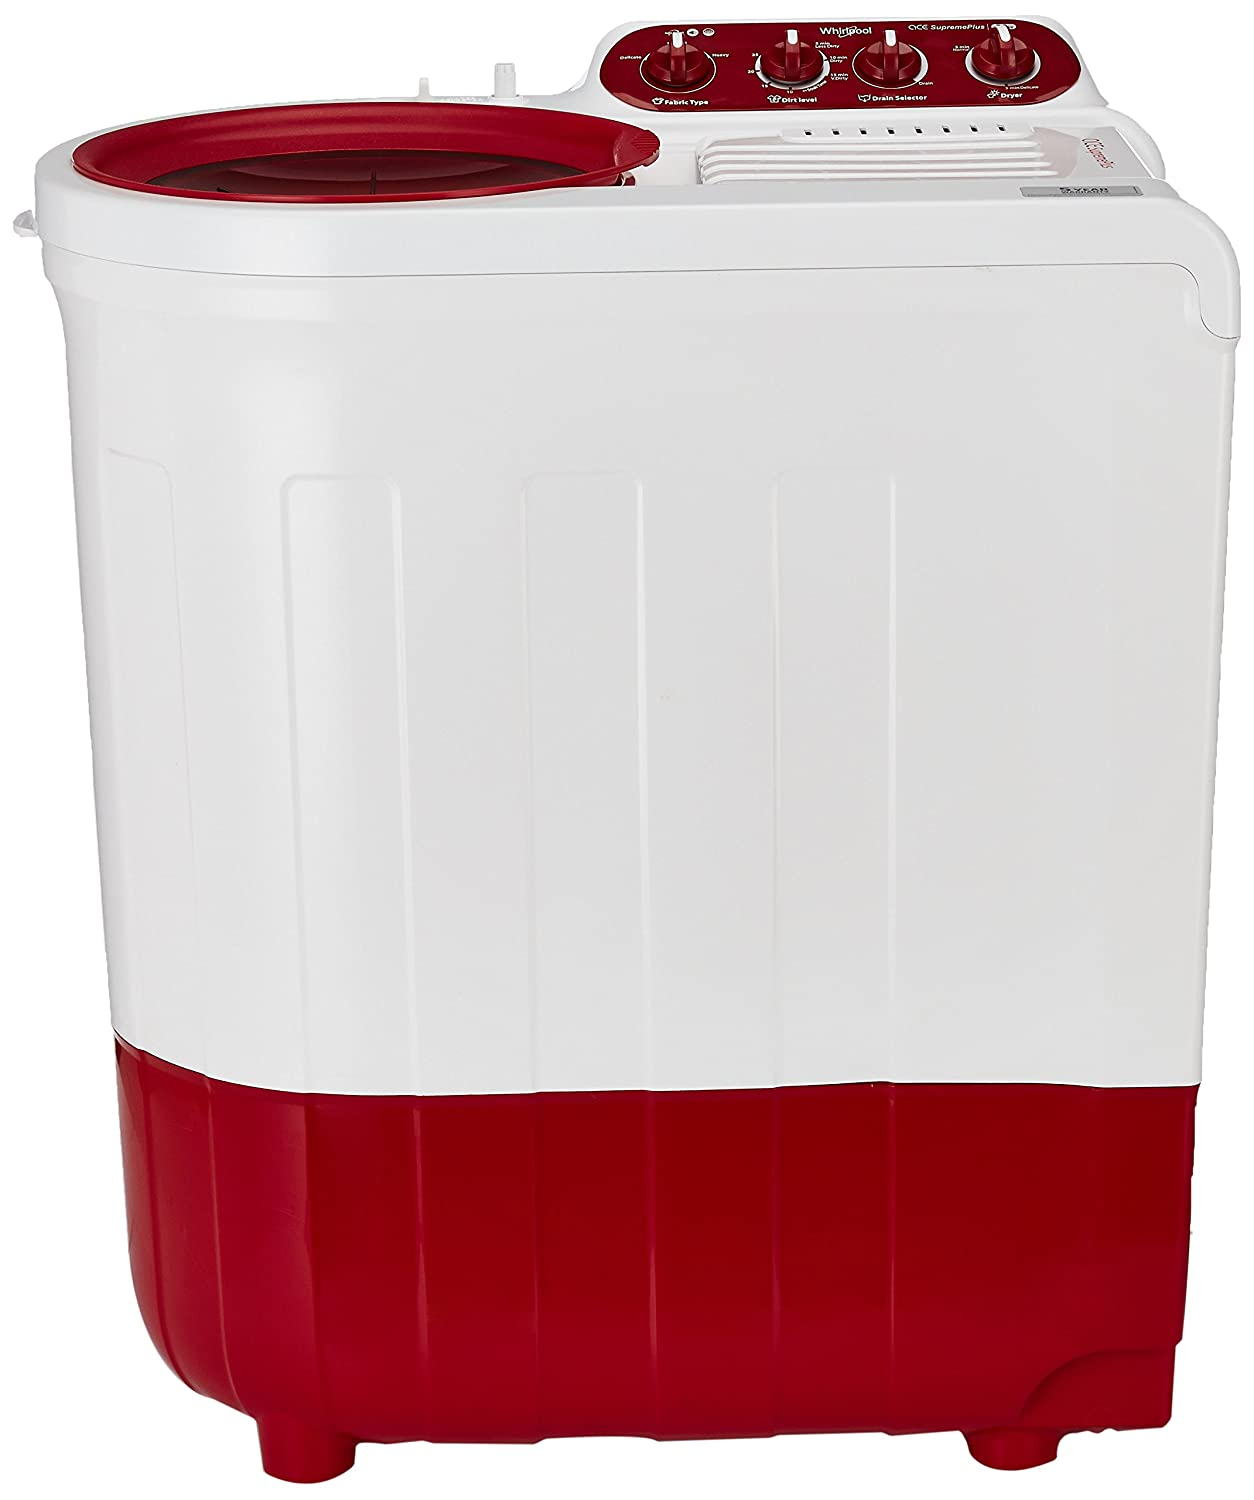 Whirlpool 7Kg Semi Automatic Washing Machine Coral Red Ace 7.0 Supreme Plus Image